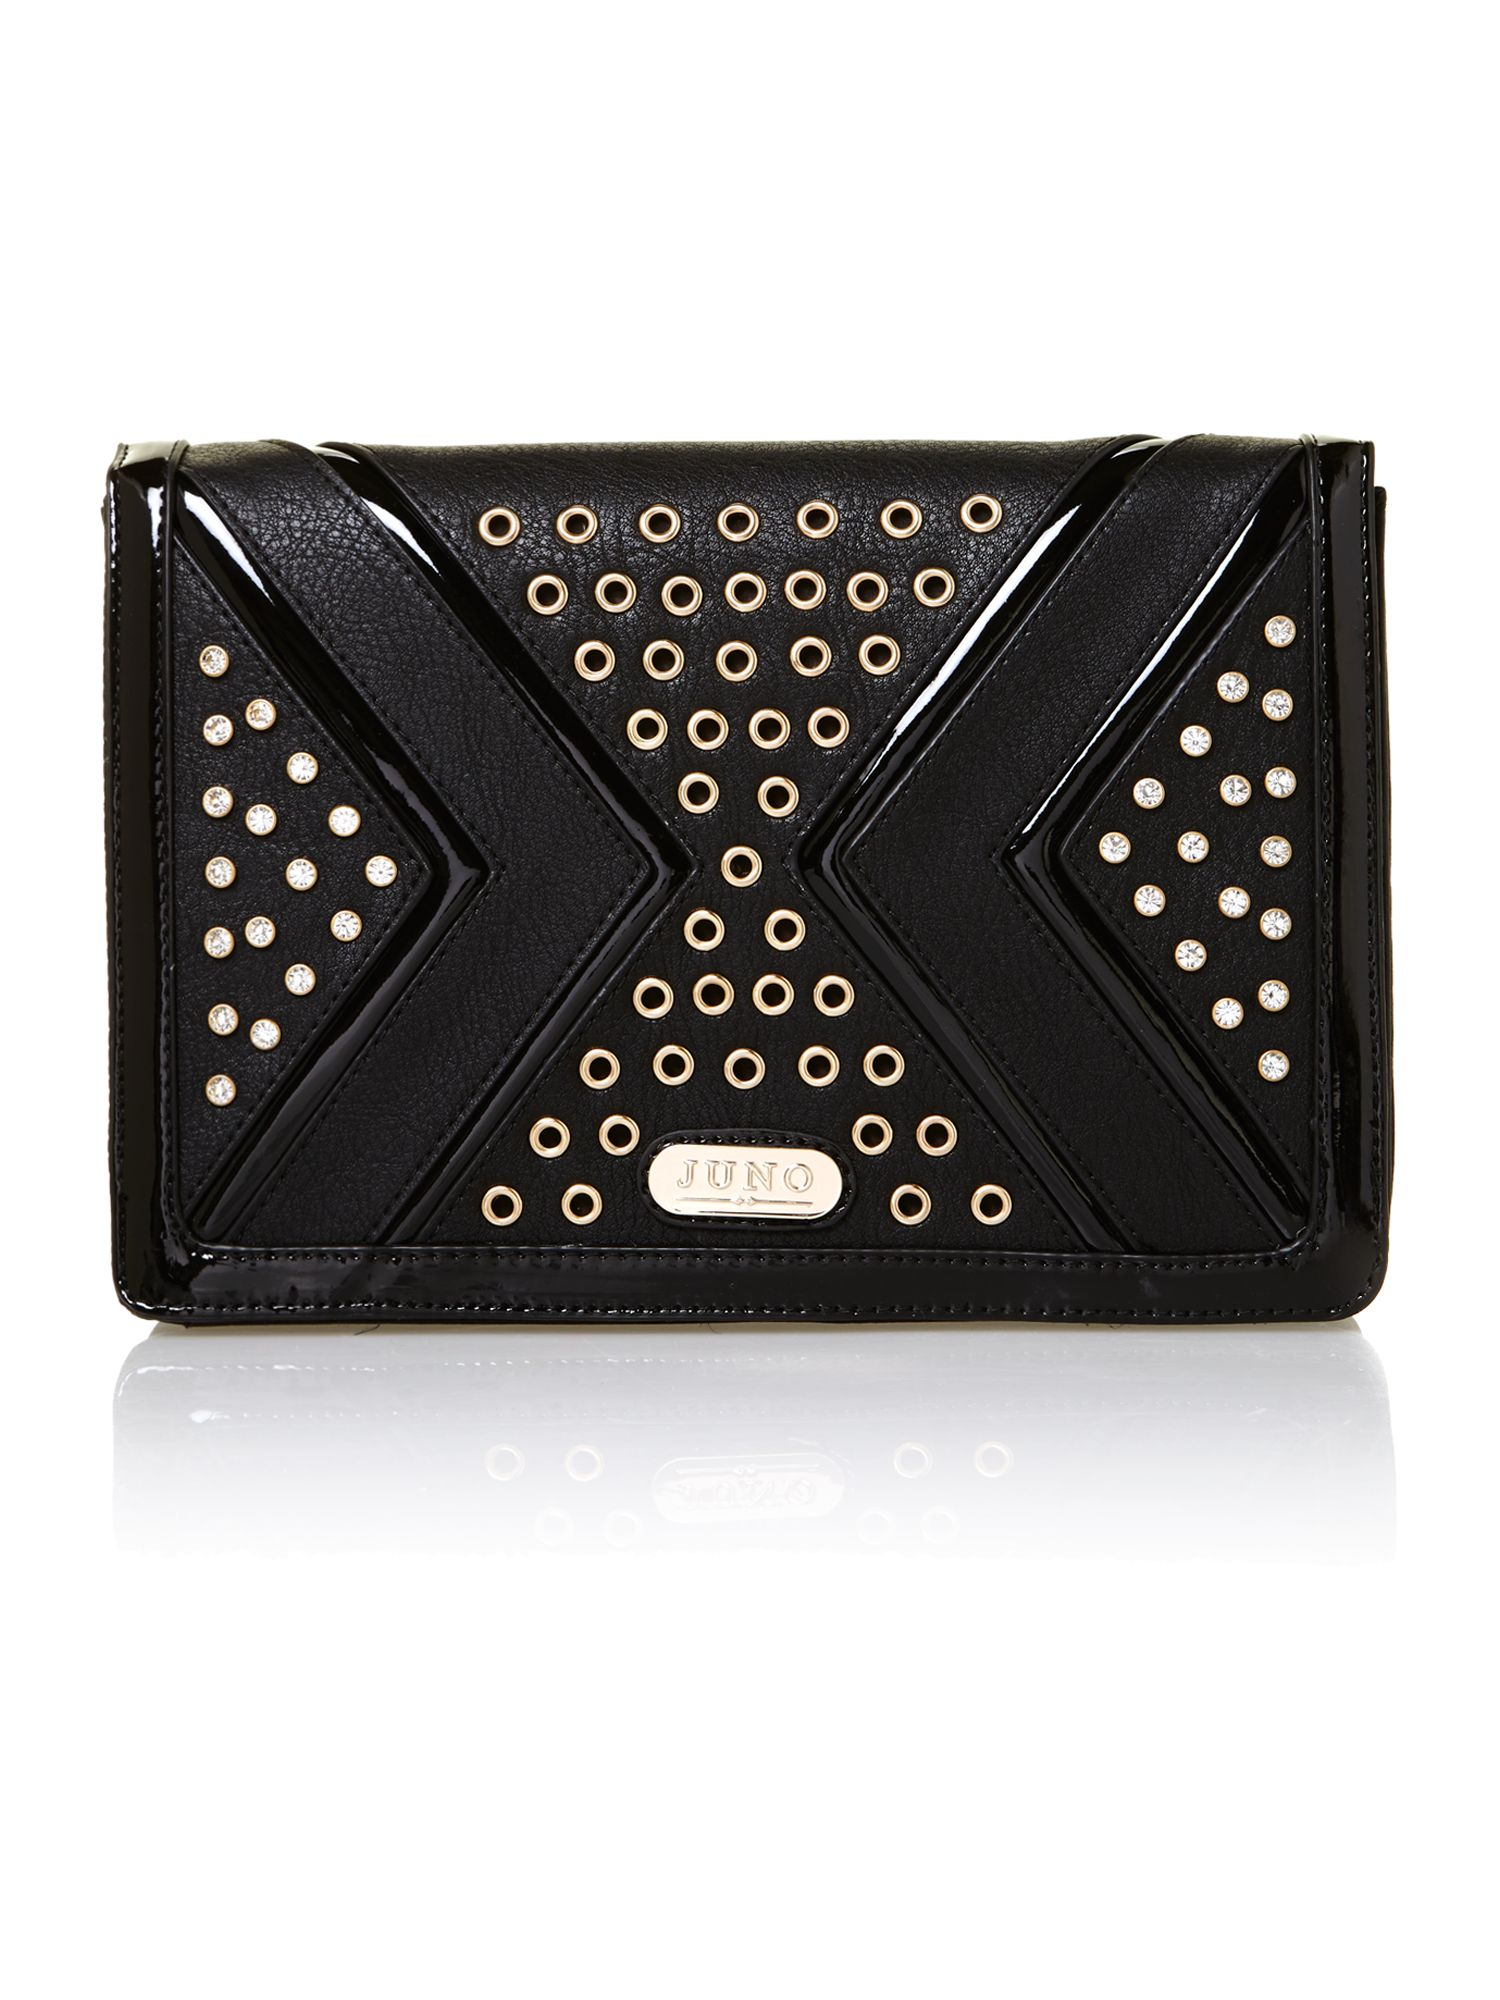 Black studded large clutch bag